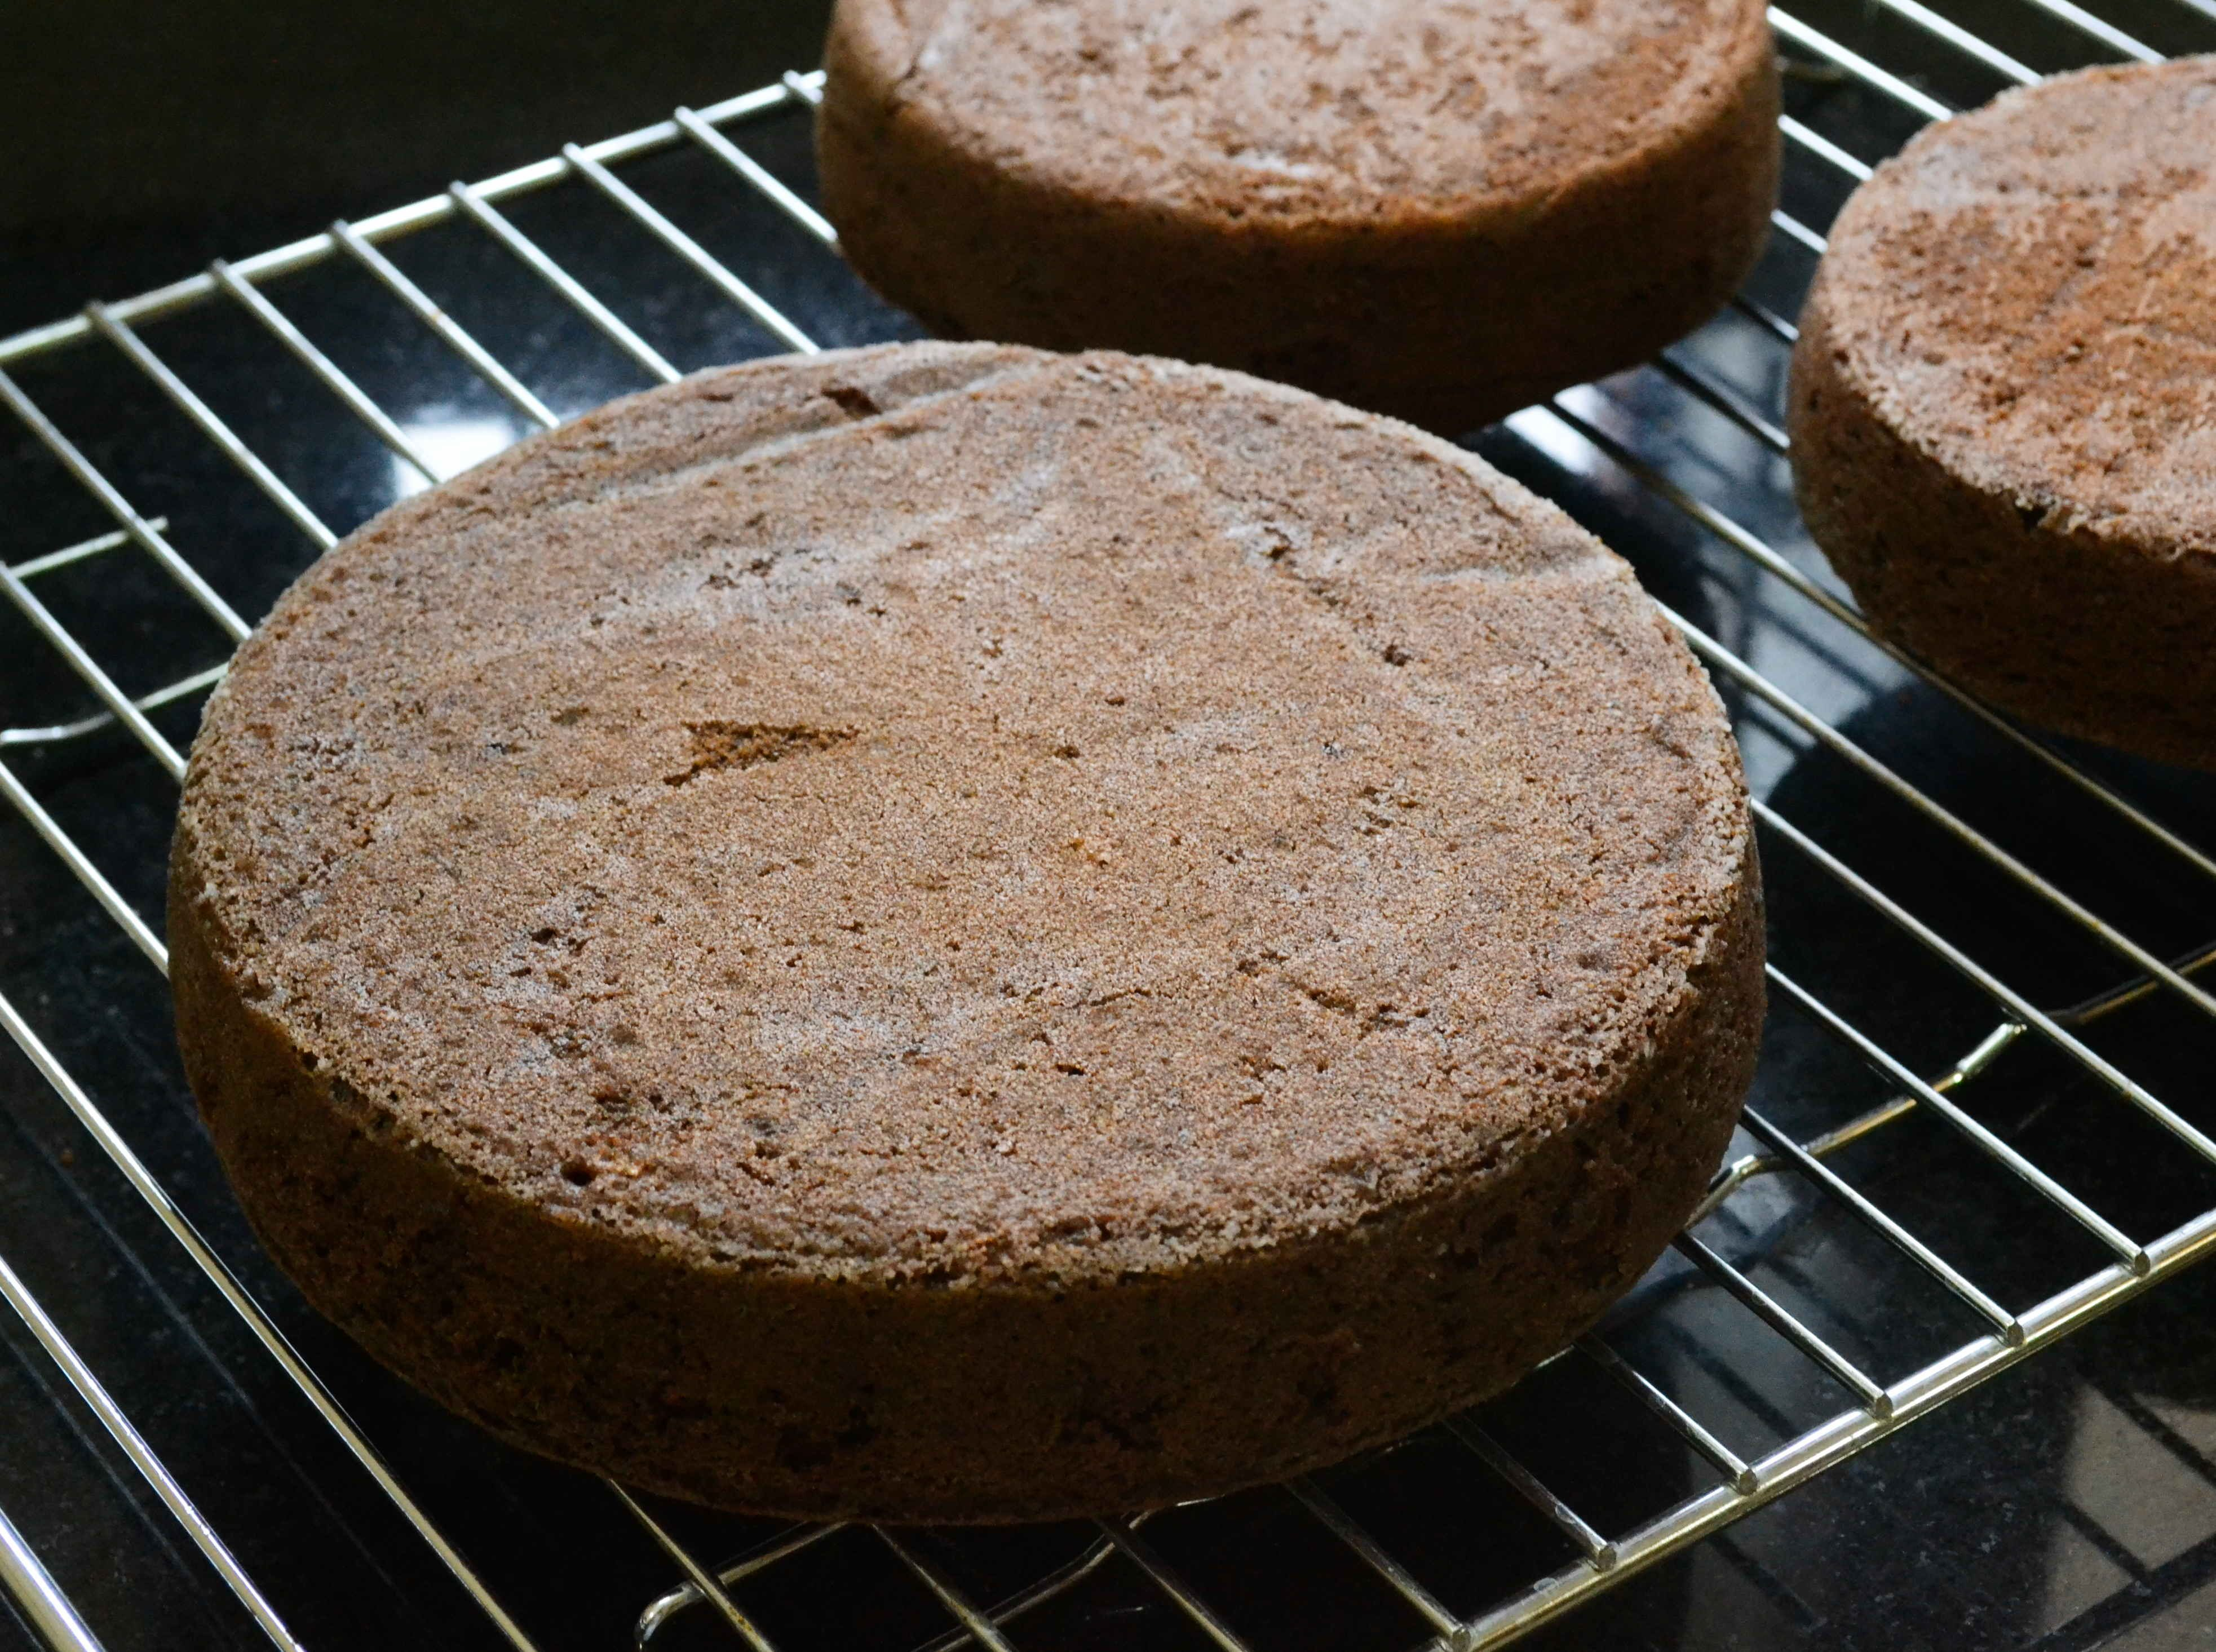 Eggless Chocolate Cake With Condensed Milk Recipe Powered By Ultimaterecipe In 2020 Condensed Milk Cake Eggless Chocolate Cake Eggless Baking